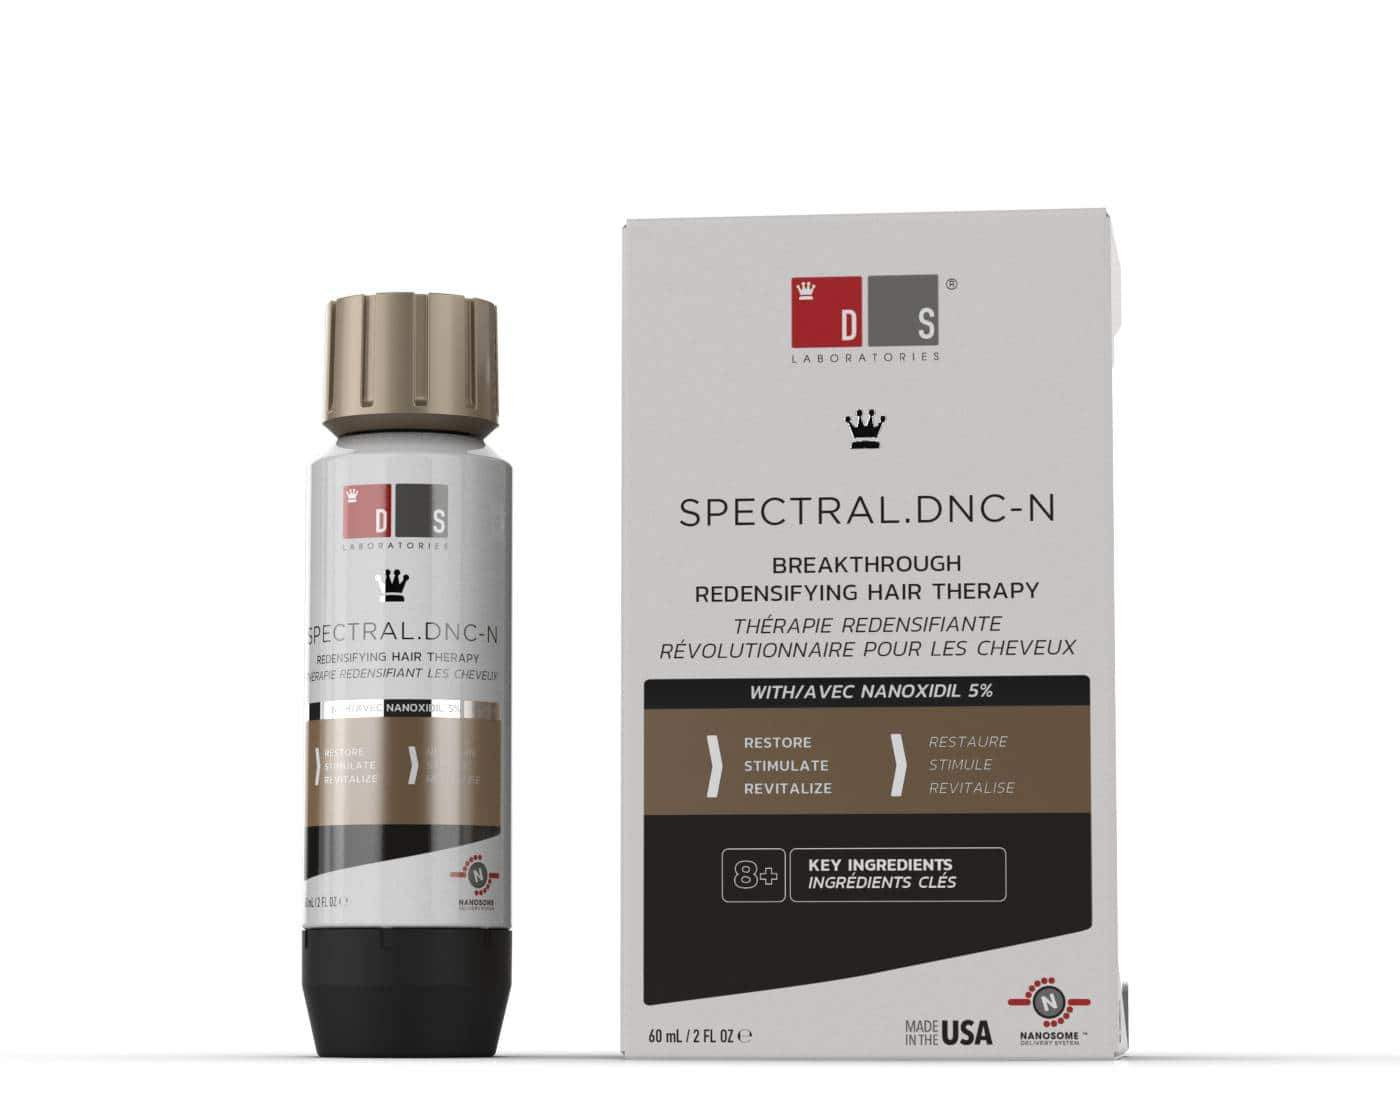 Spectral.DNC-N | Breakthrough redensifying treatment with Nanoxidil 5%